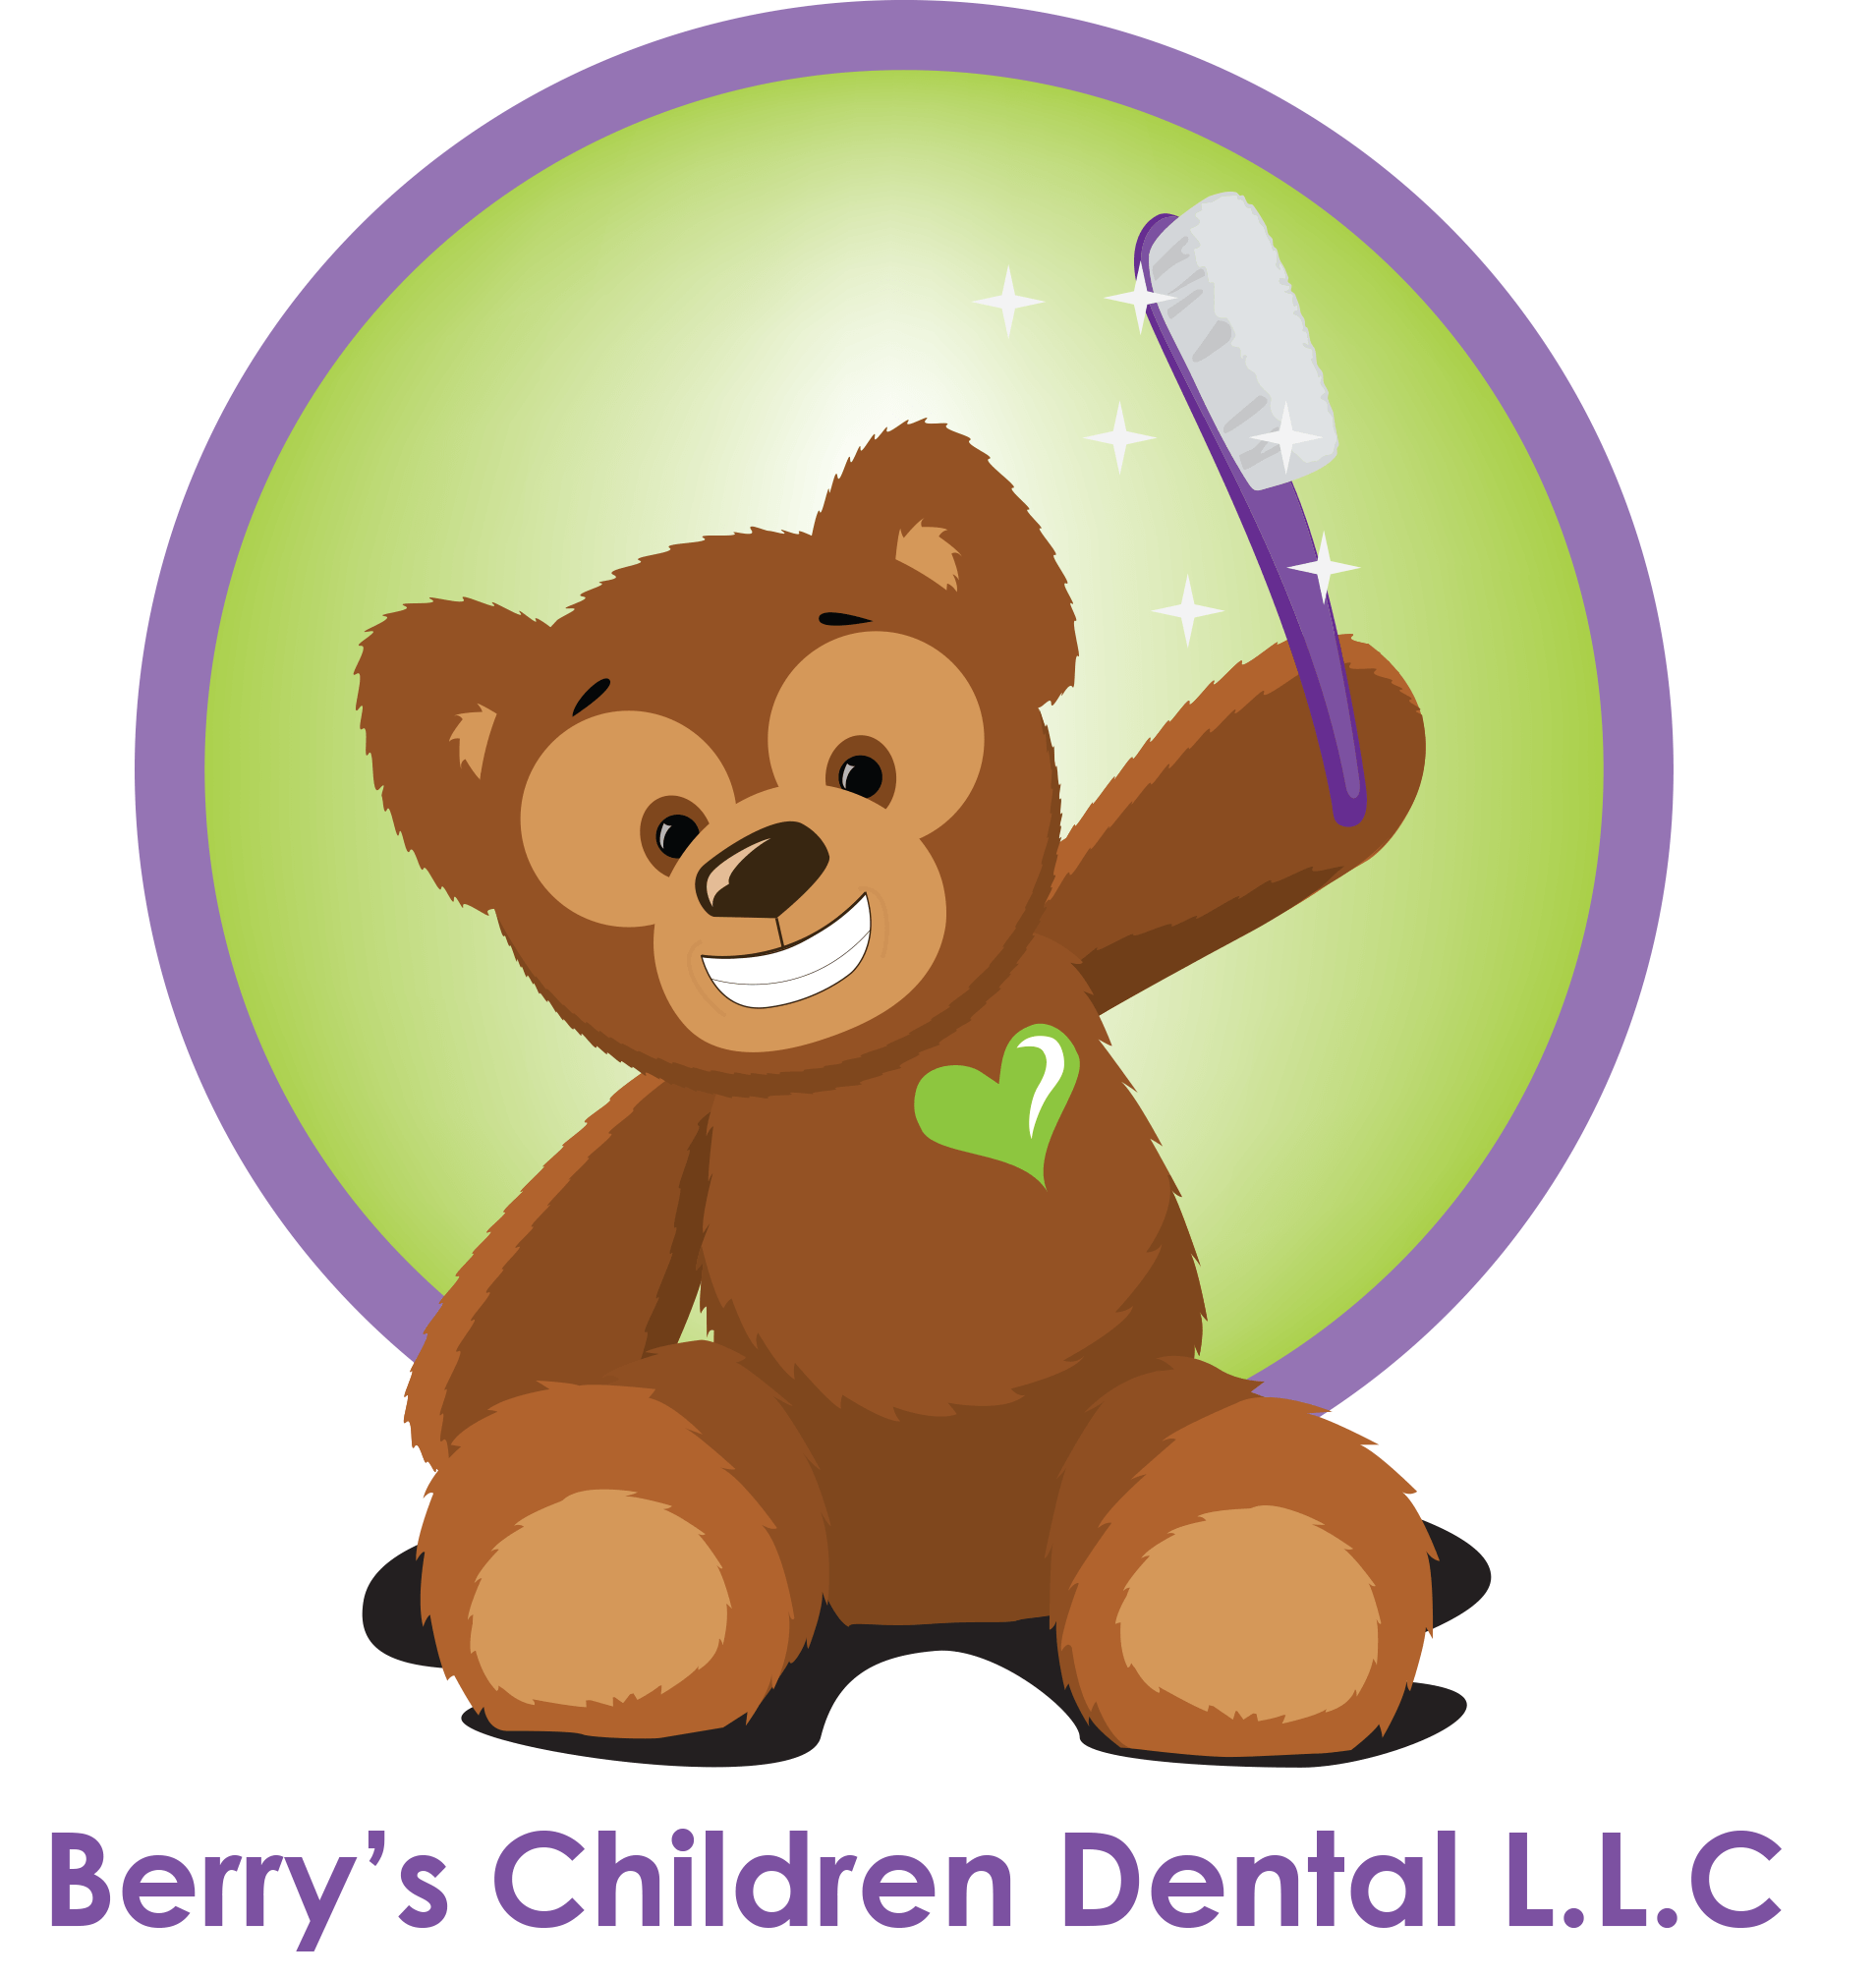 Library clipart dentist. Orthodontic and pediatric dentists